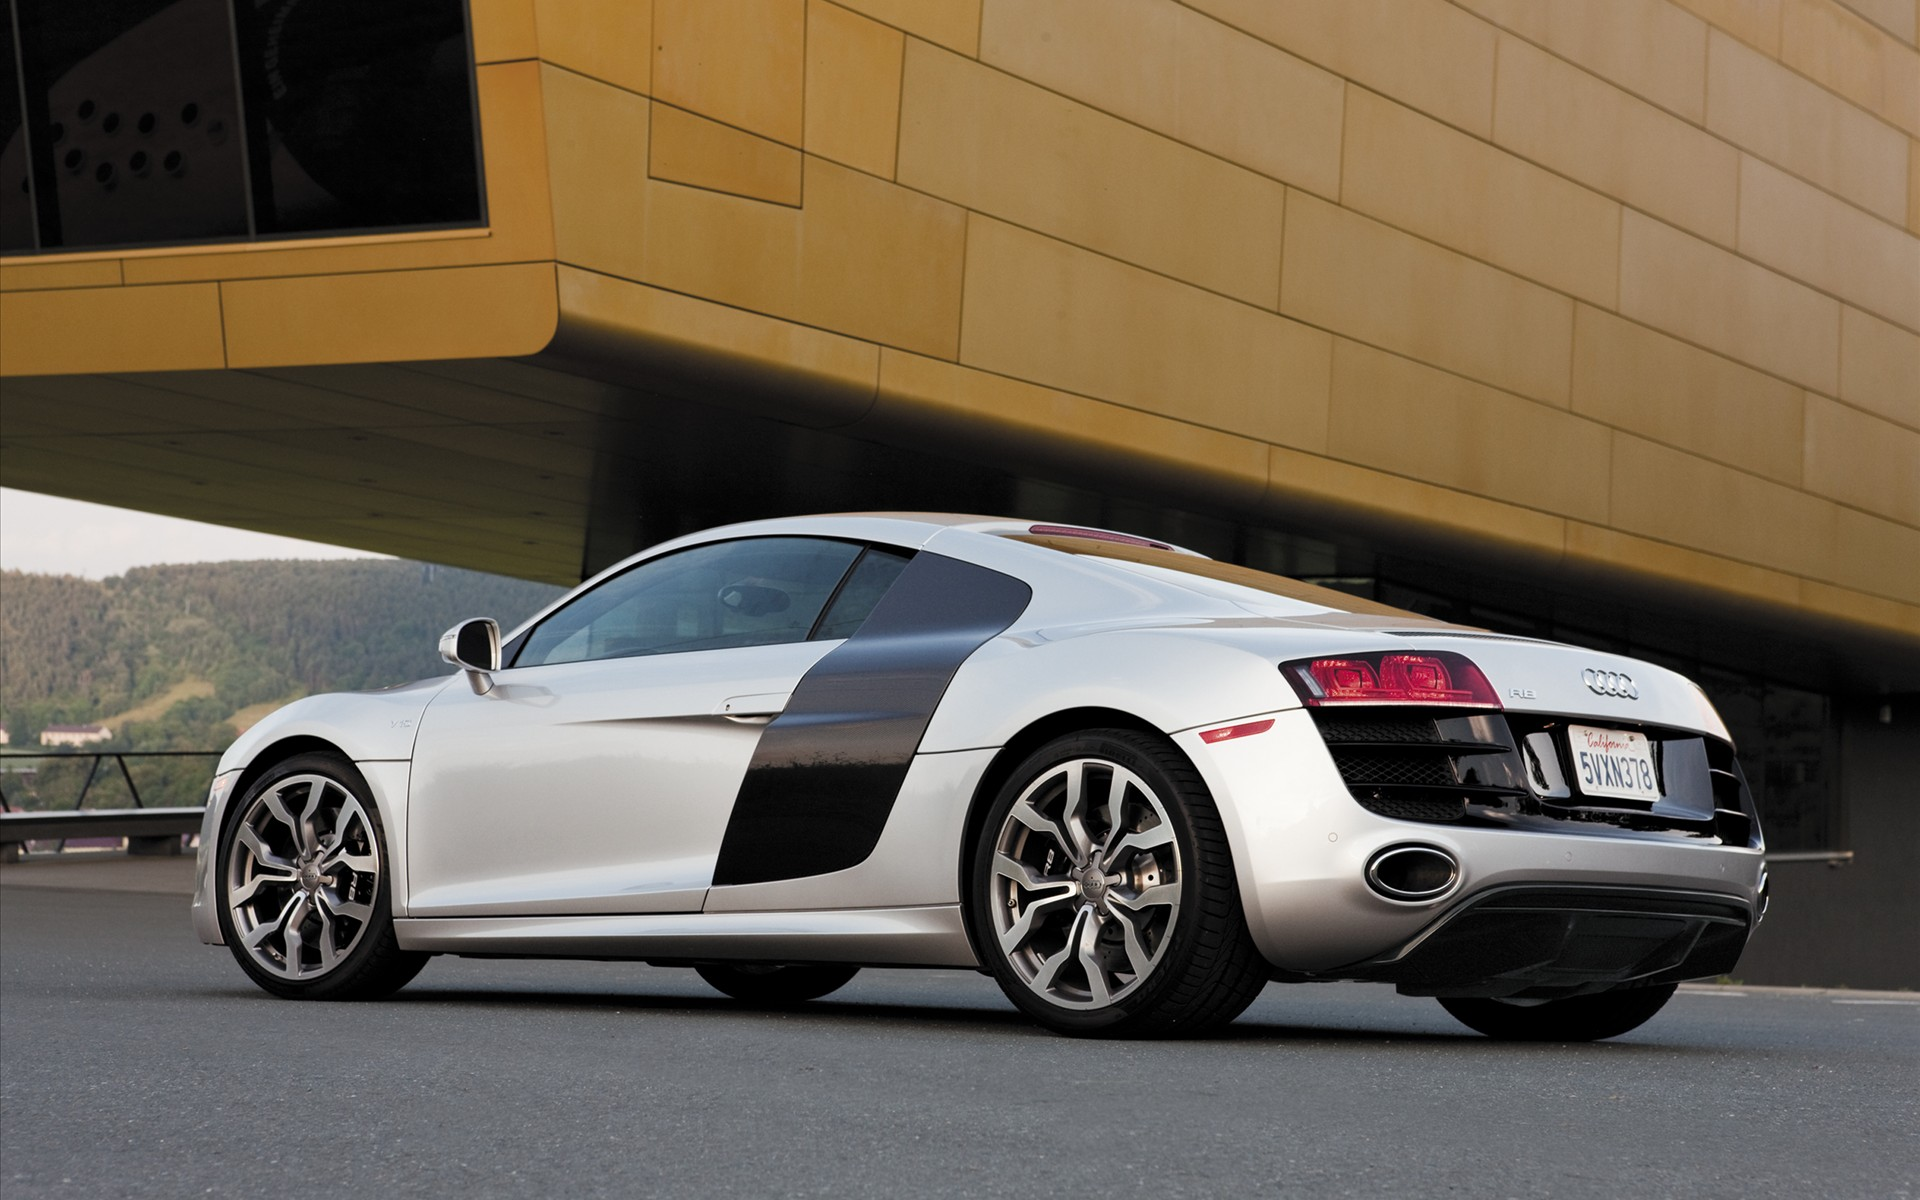 2010 Audi R8 V10 HD Wallpapers 1920x1200